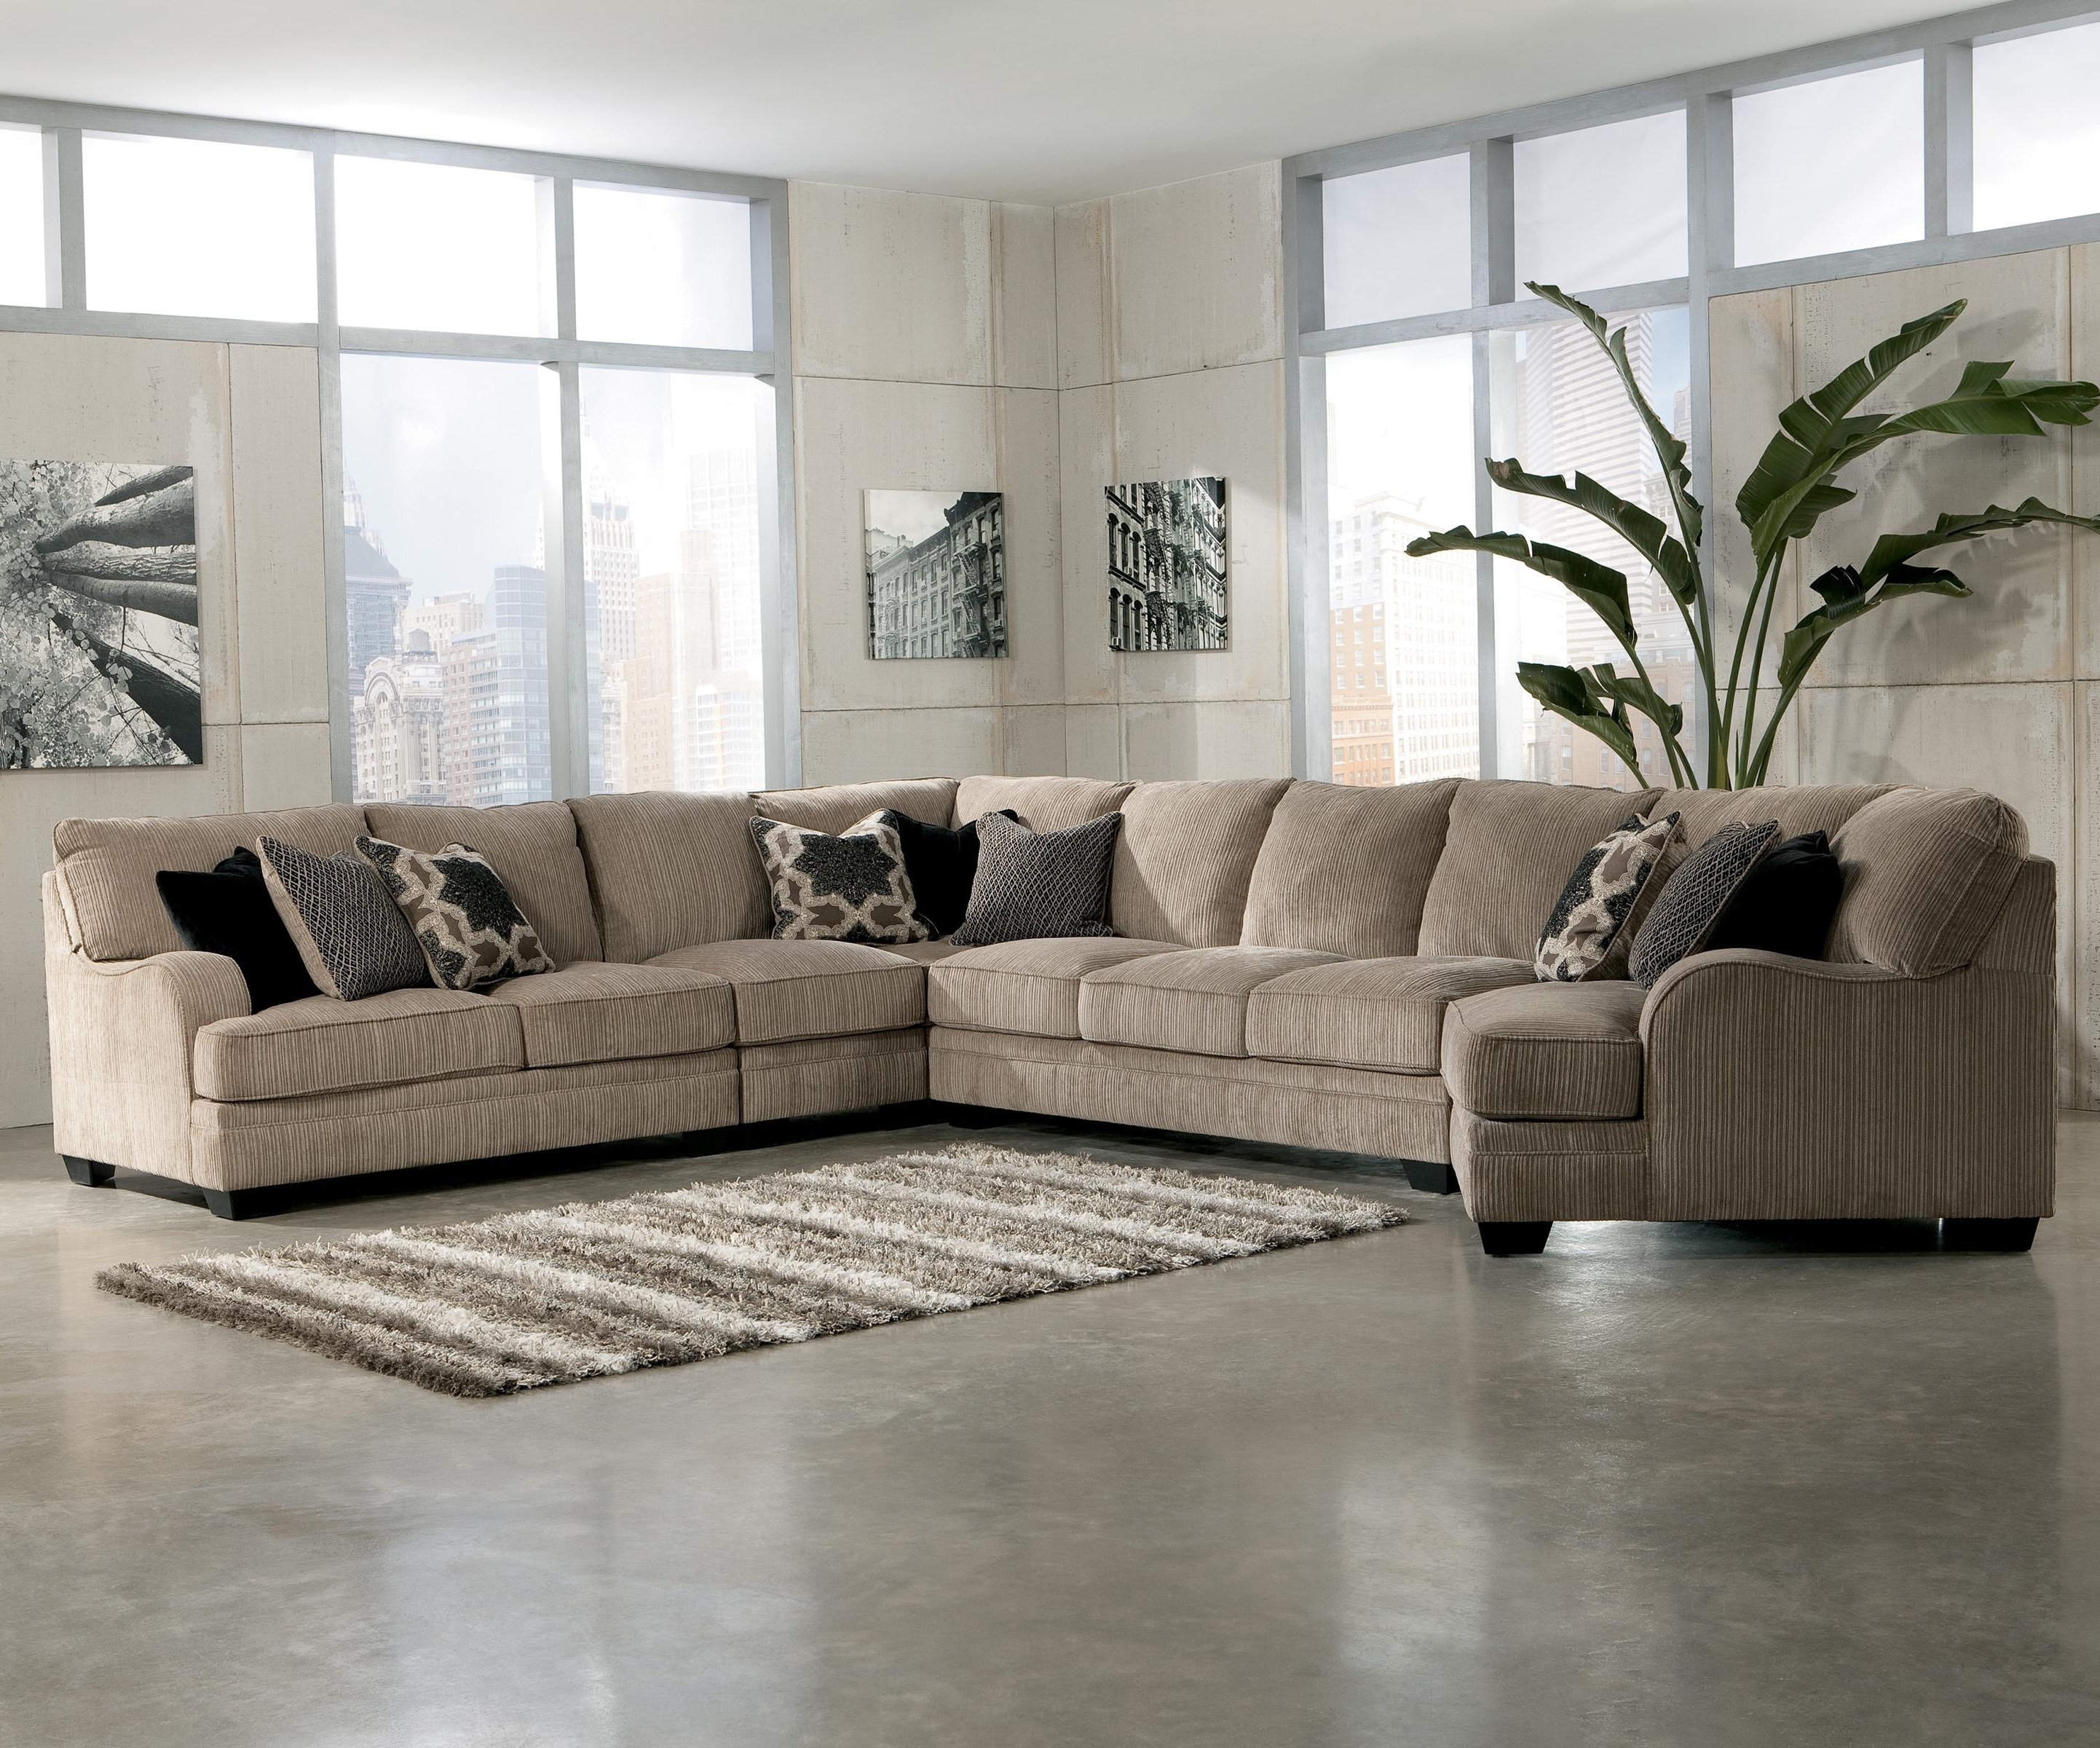 Signature Designashley Katisha – Platinum 5 Piece Sectional In Most Current Peterborough Ontario Sectional Sofas (View 14 of 20)